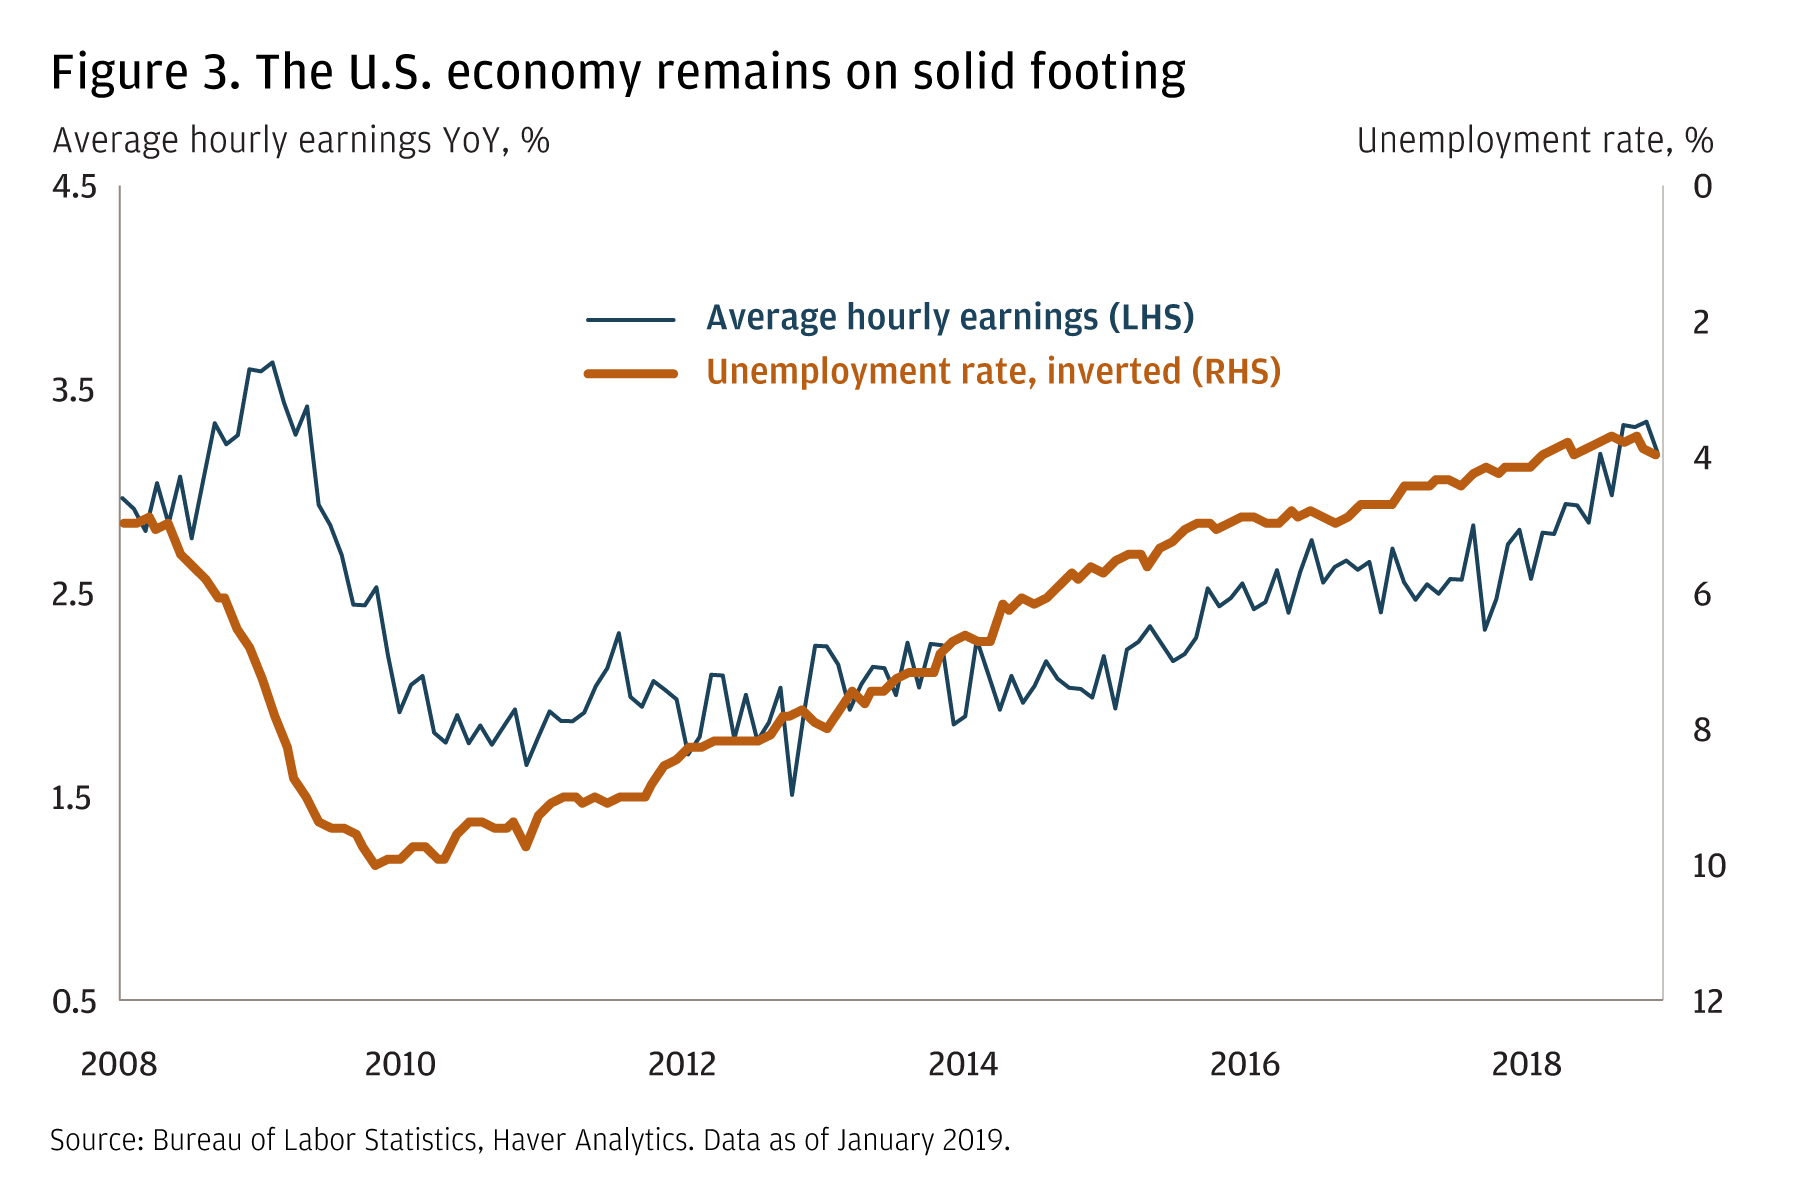 A line graph compares Average hourly earnings (LHS) and the Unemployment rate (RHS inverted), from 2008 to January 2019. The unemployment rate has been declining and is near historical lows at about 4%, and average hourly earnings have been increasing year-over-year.